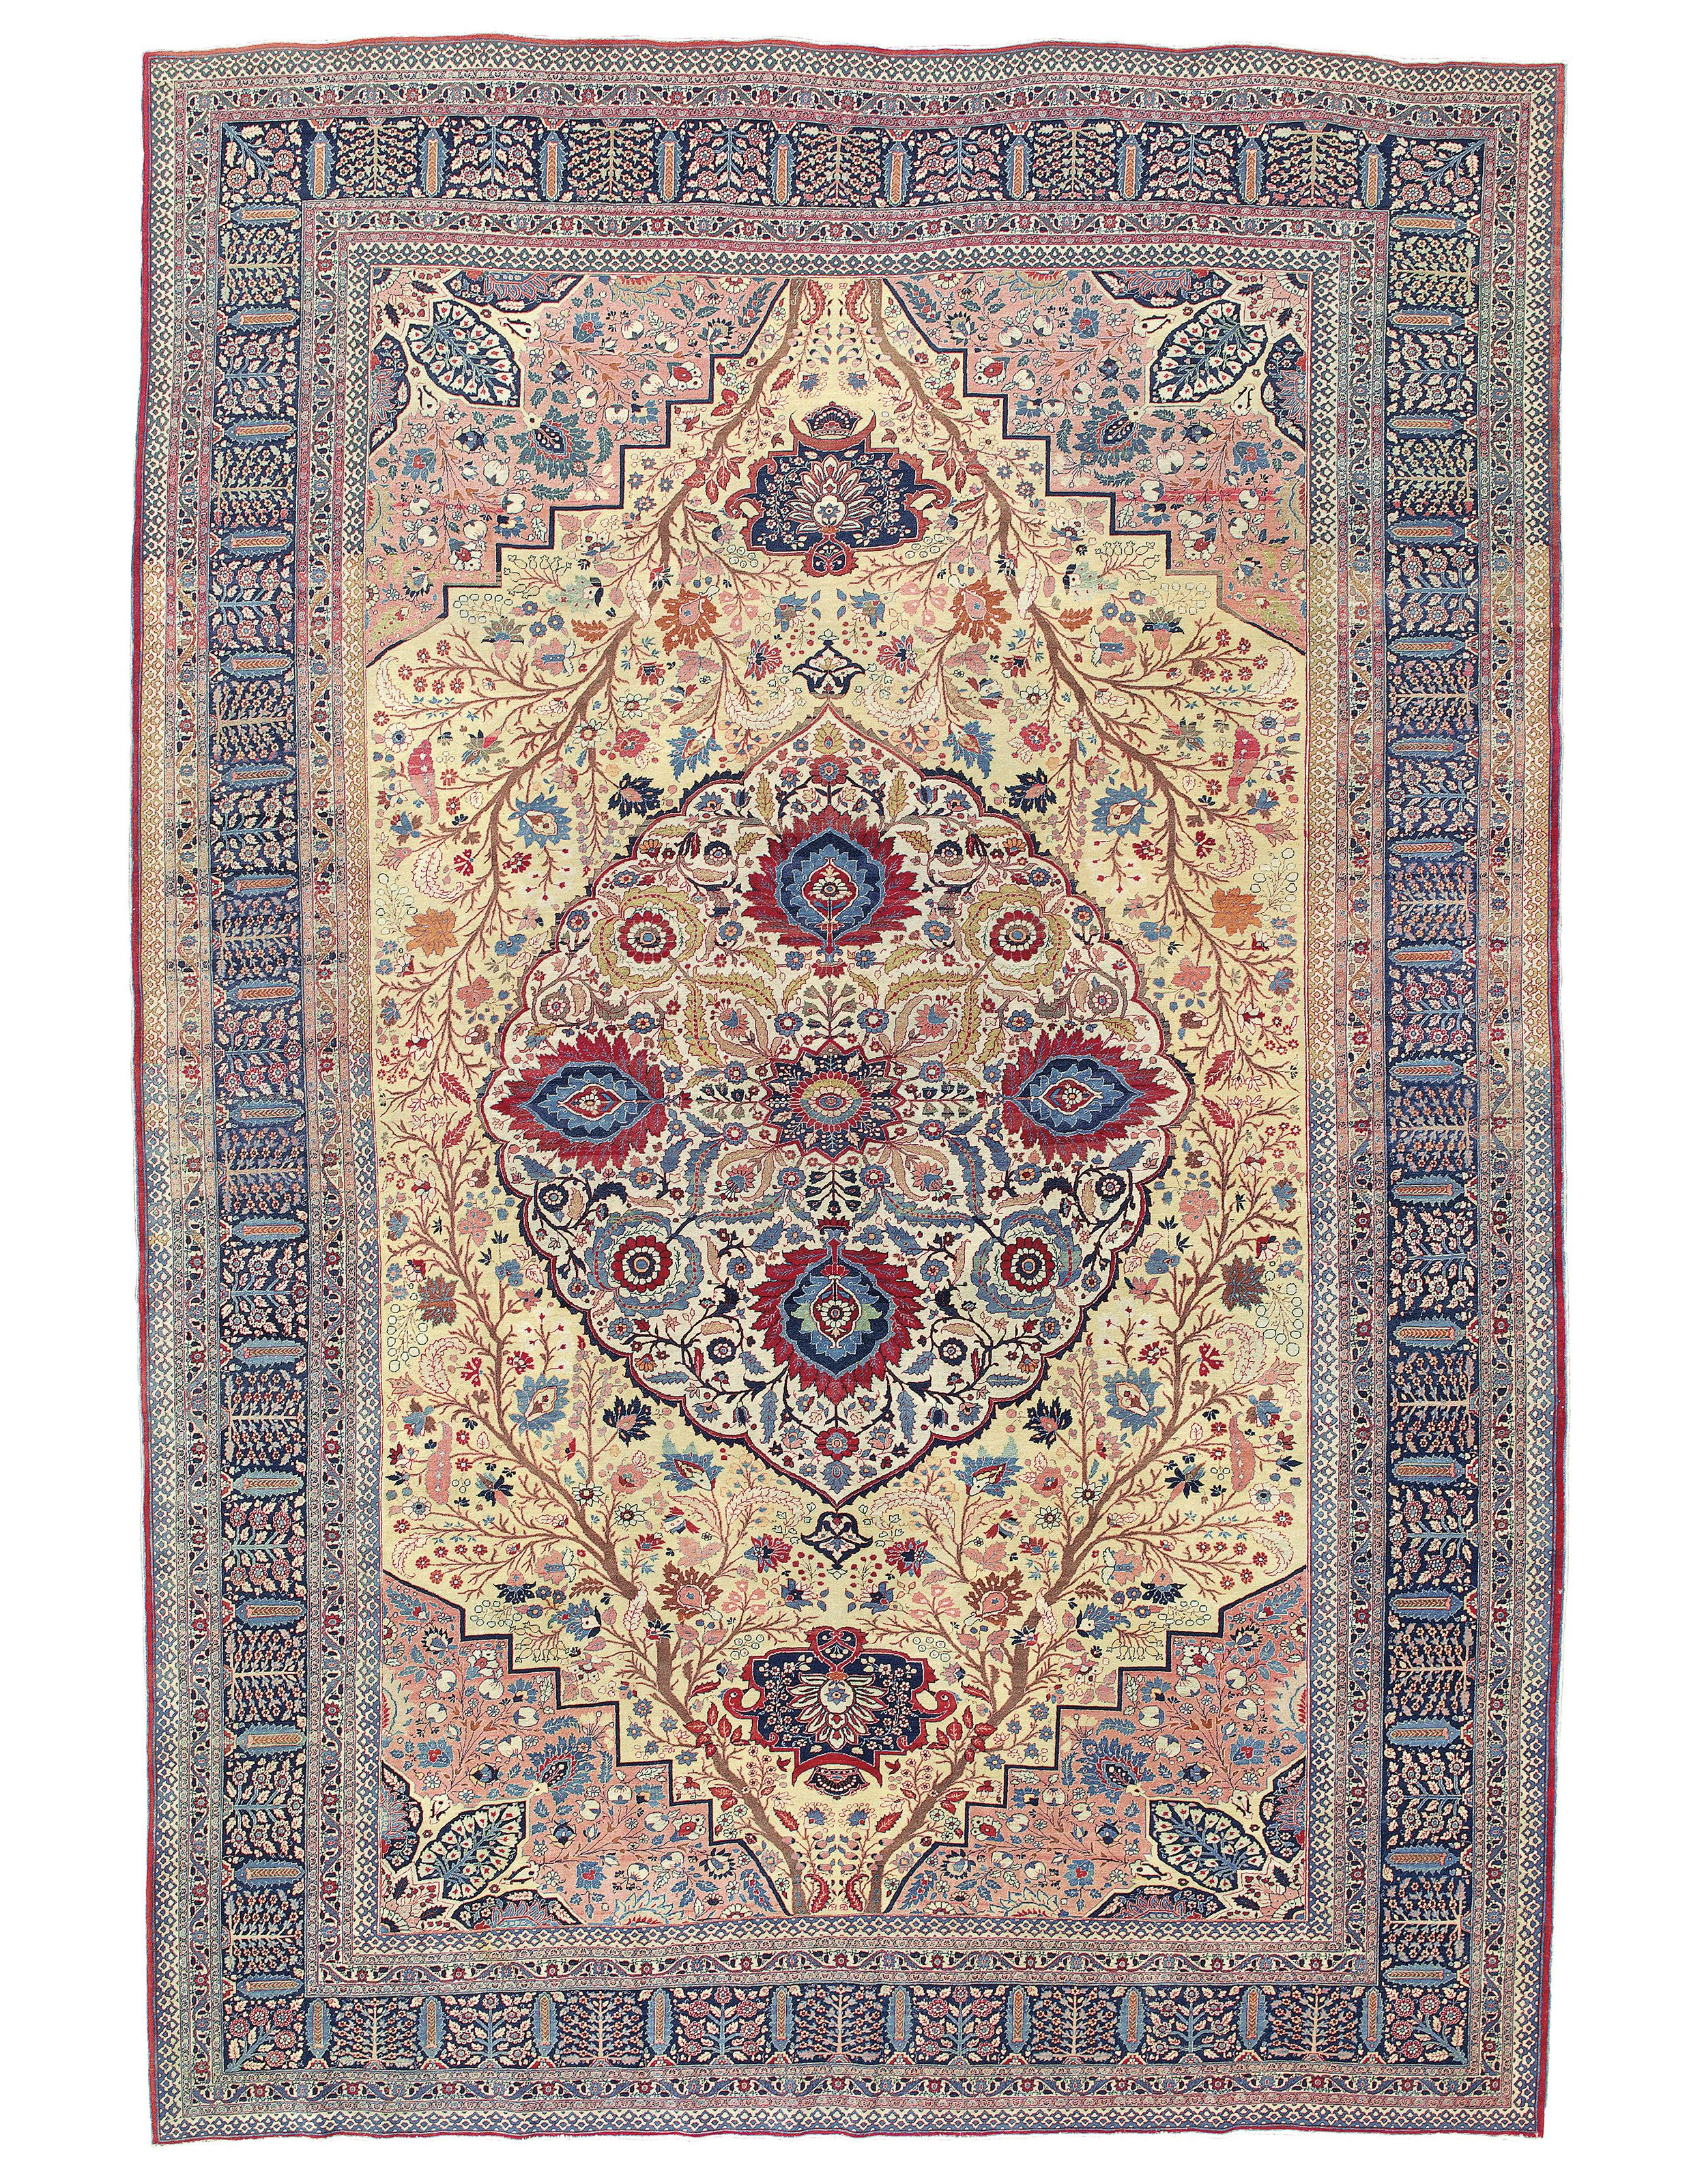 Tabriz Carpet Probably From The Workshop Of Hadji Jalili North West Persia Circa 1890 15ft 3in X 10ft 2in Rugs On Carpet Persian Carpet Patterned Carpet